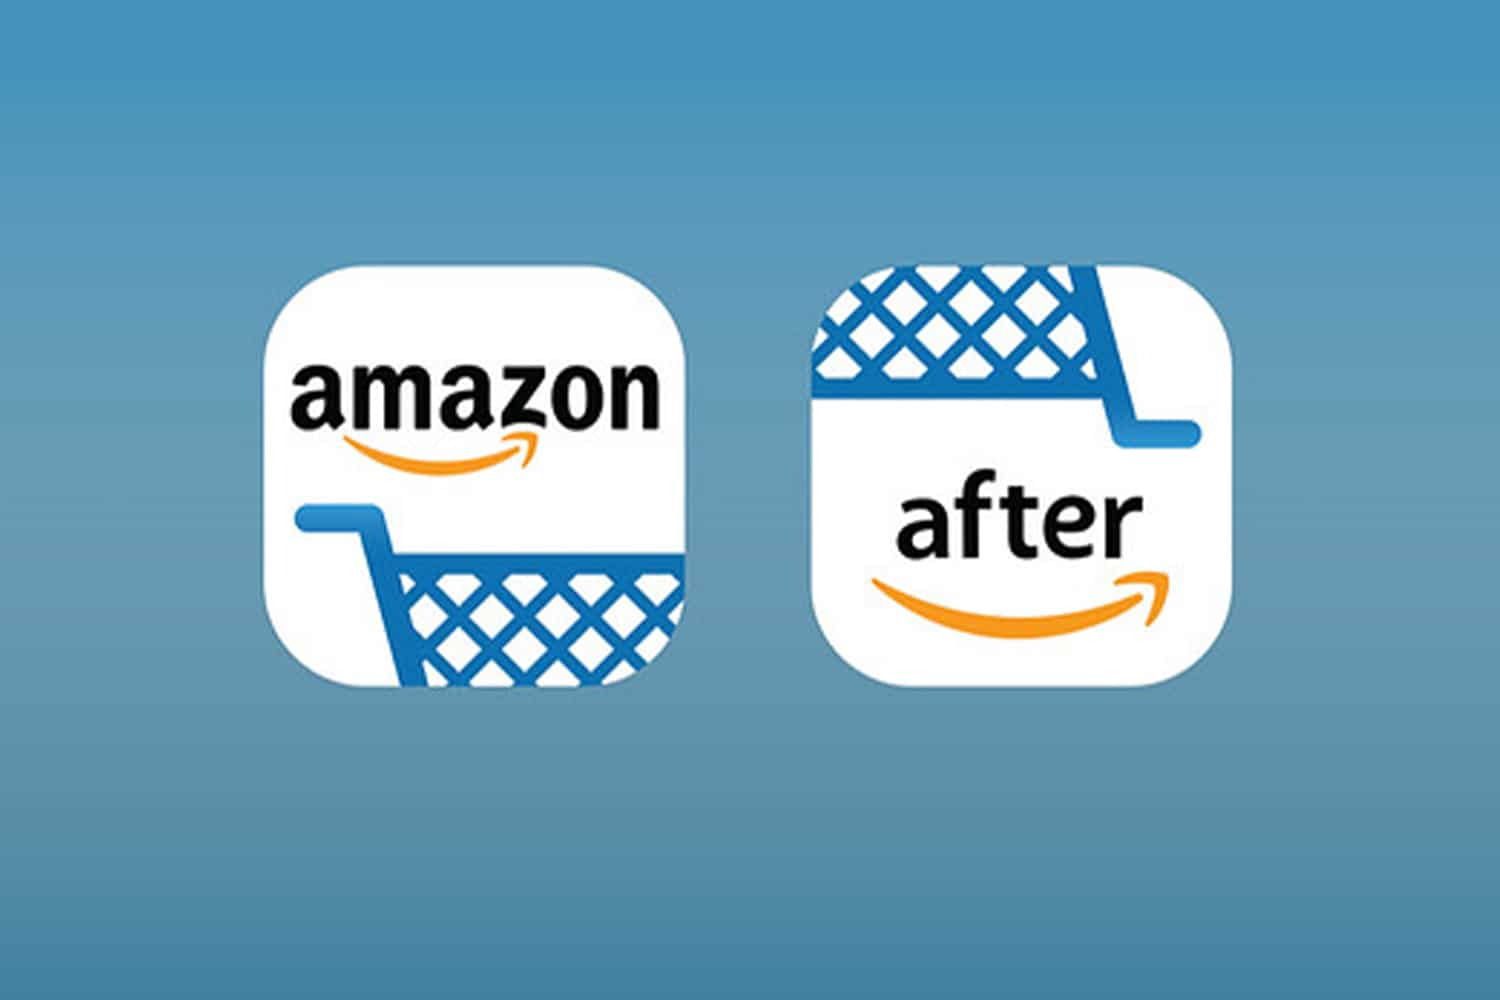 Amazon After